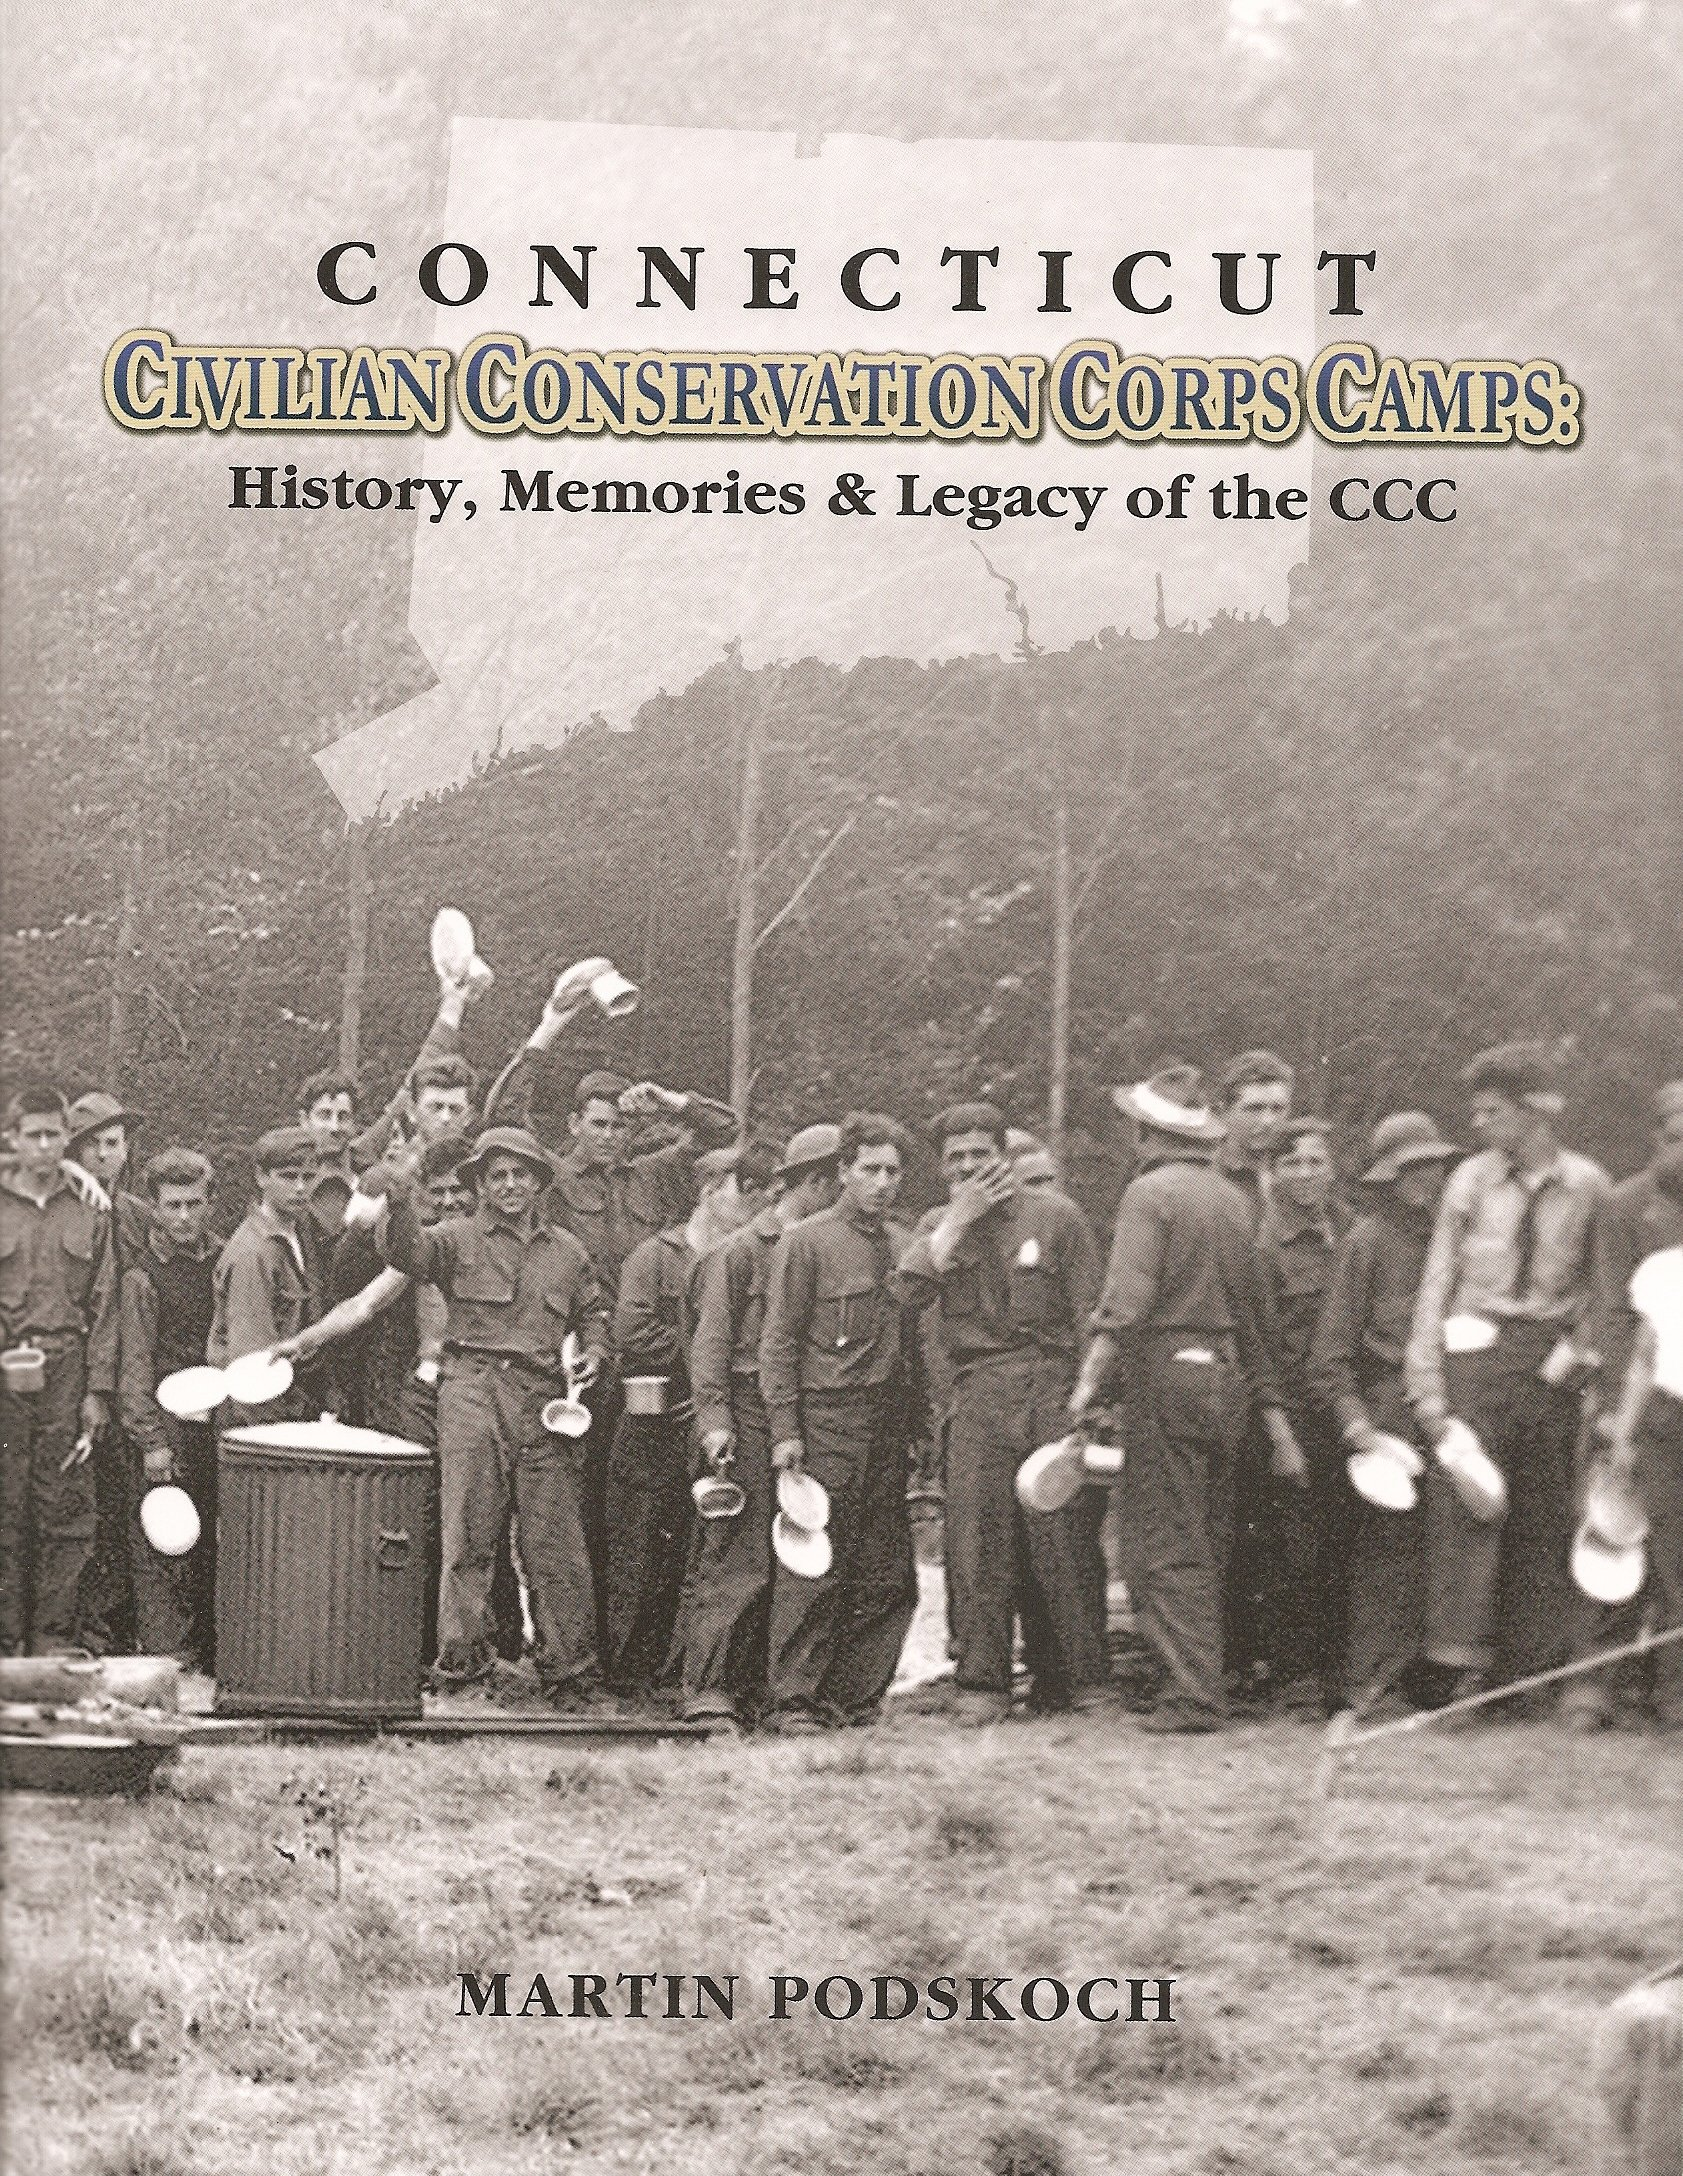 Download Connecticut Civilian Conservation Corps Camps: History, Memories & Legacy of the CCC ebook